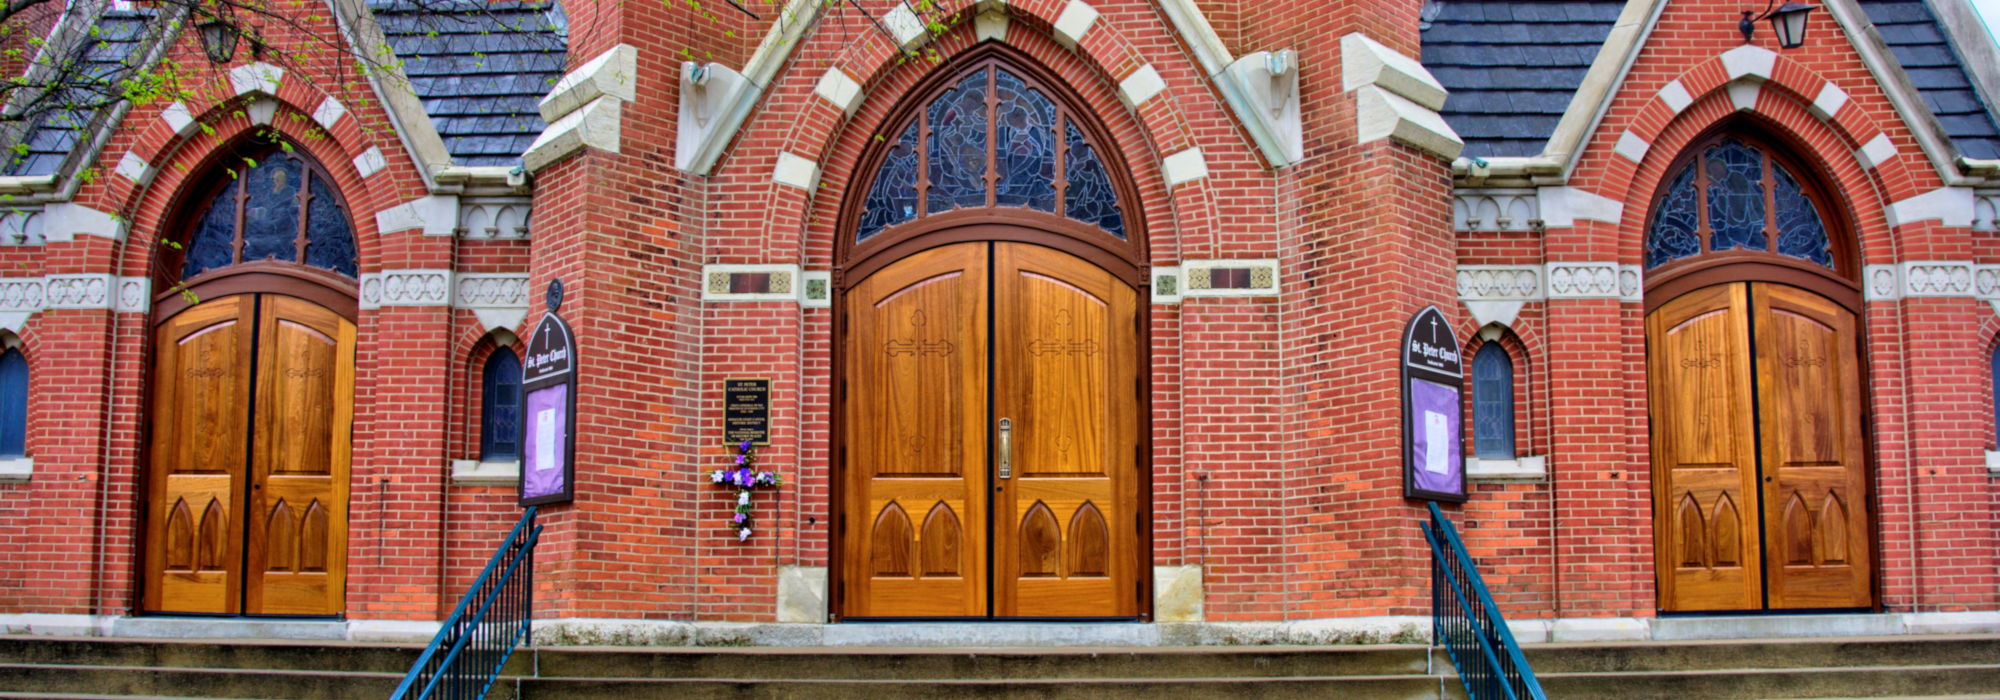 st-peter-doors